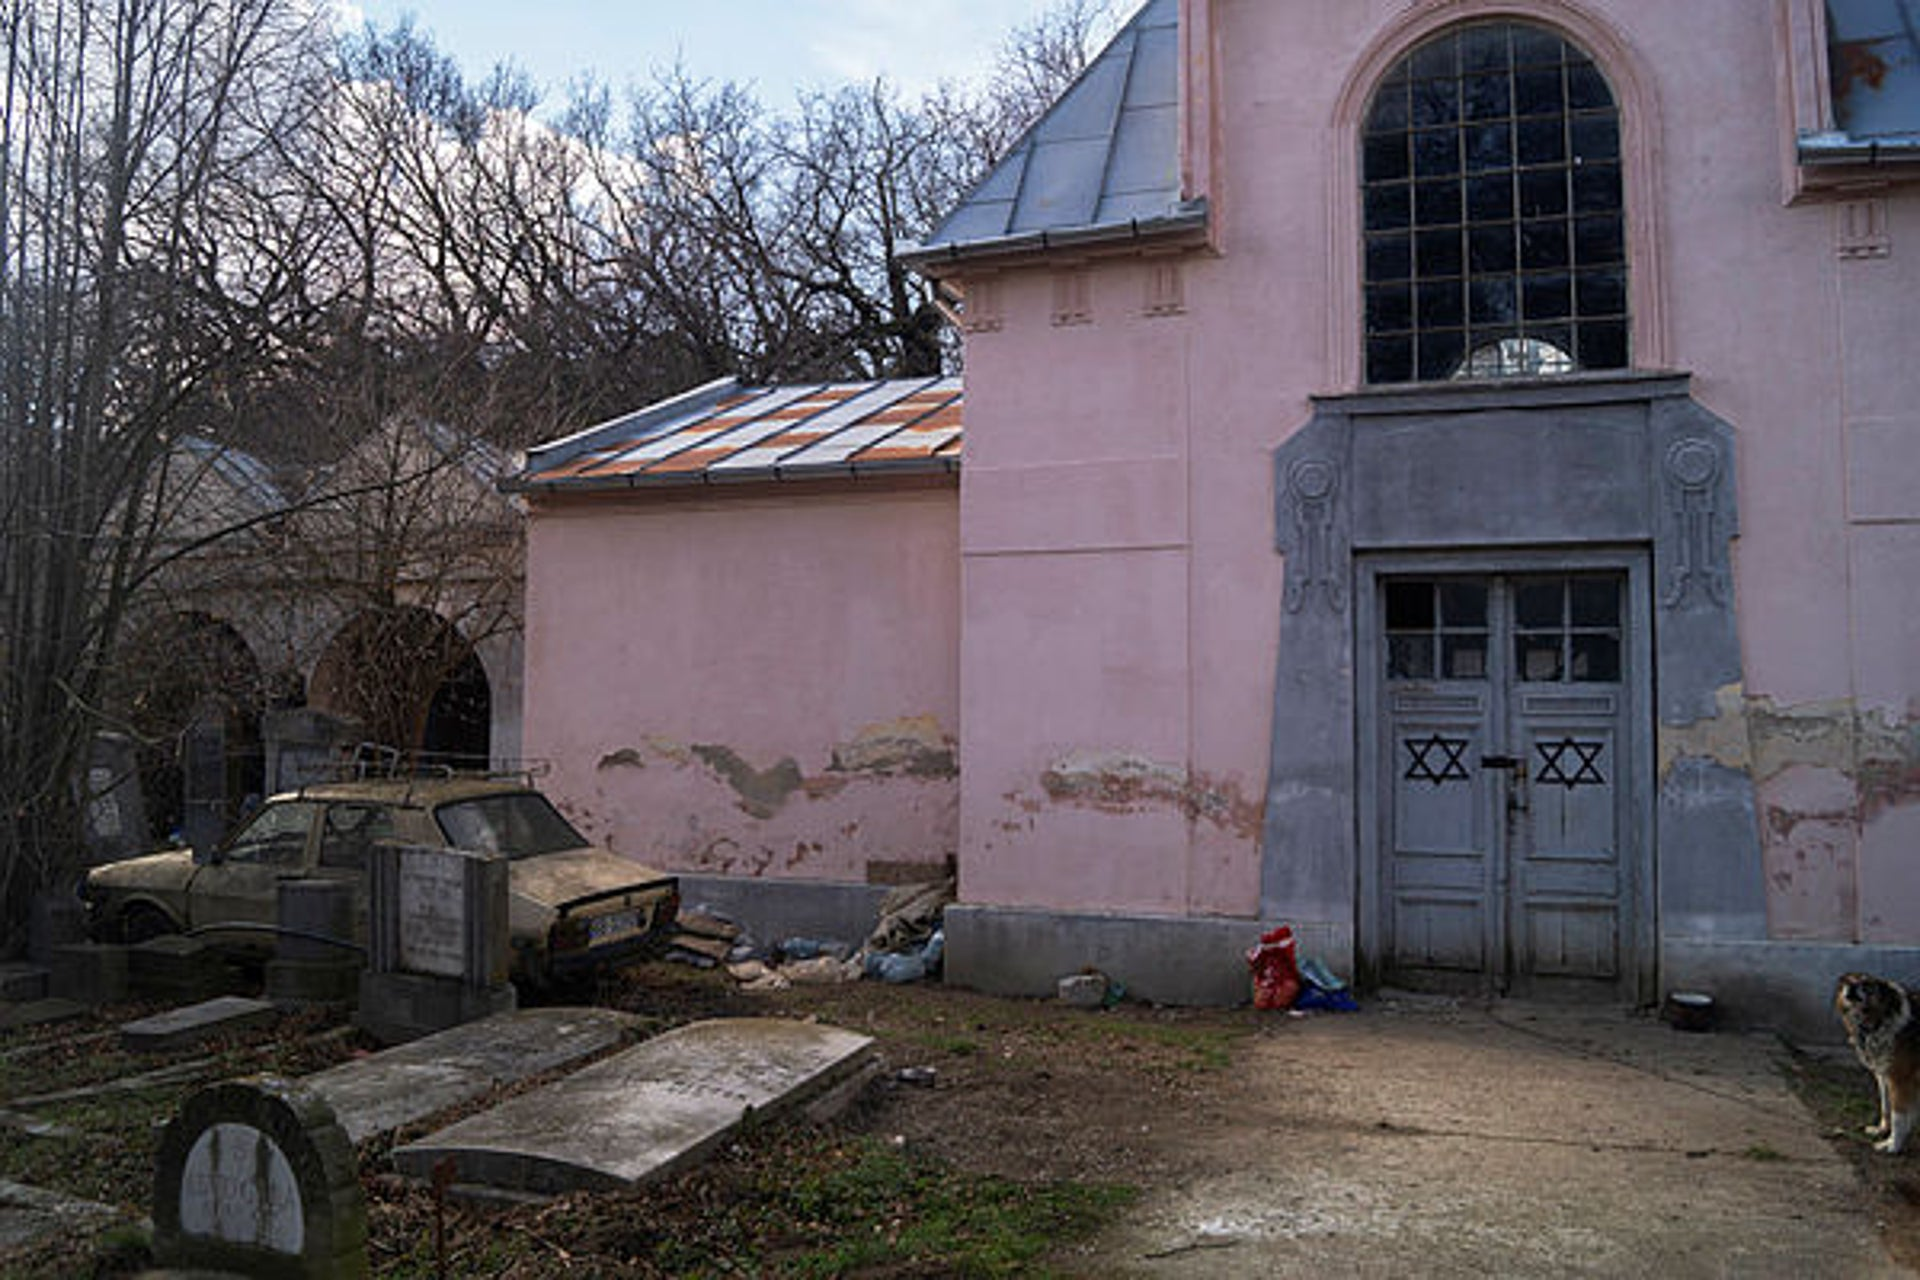 The dilapidated chapel at the entrance to the Jewish cemetery in Sibiu, Romania.